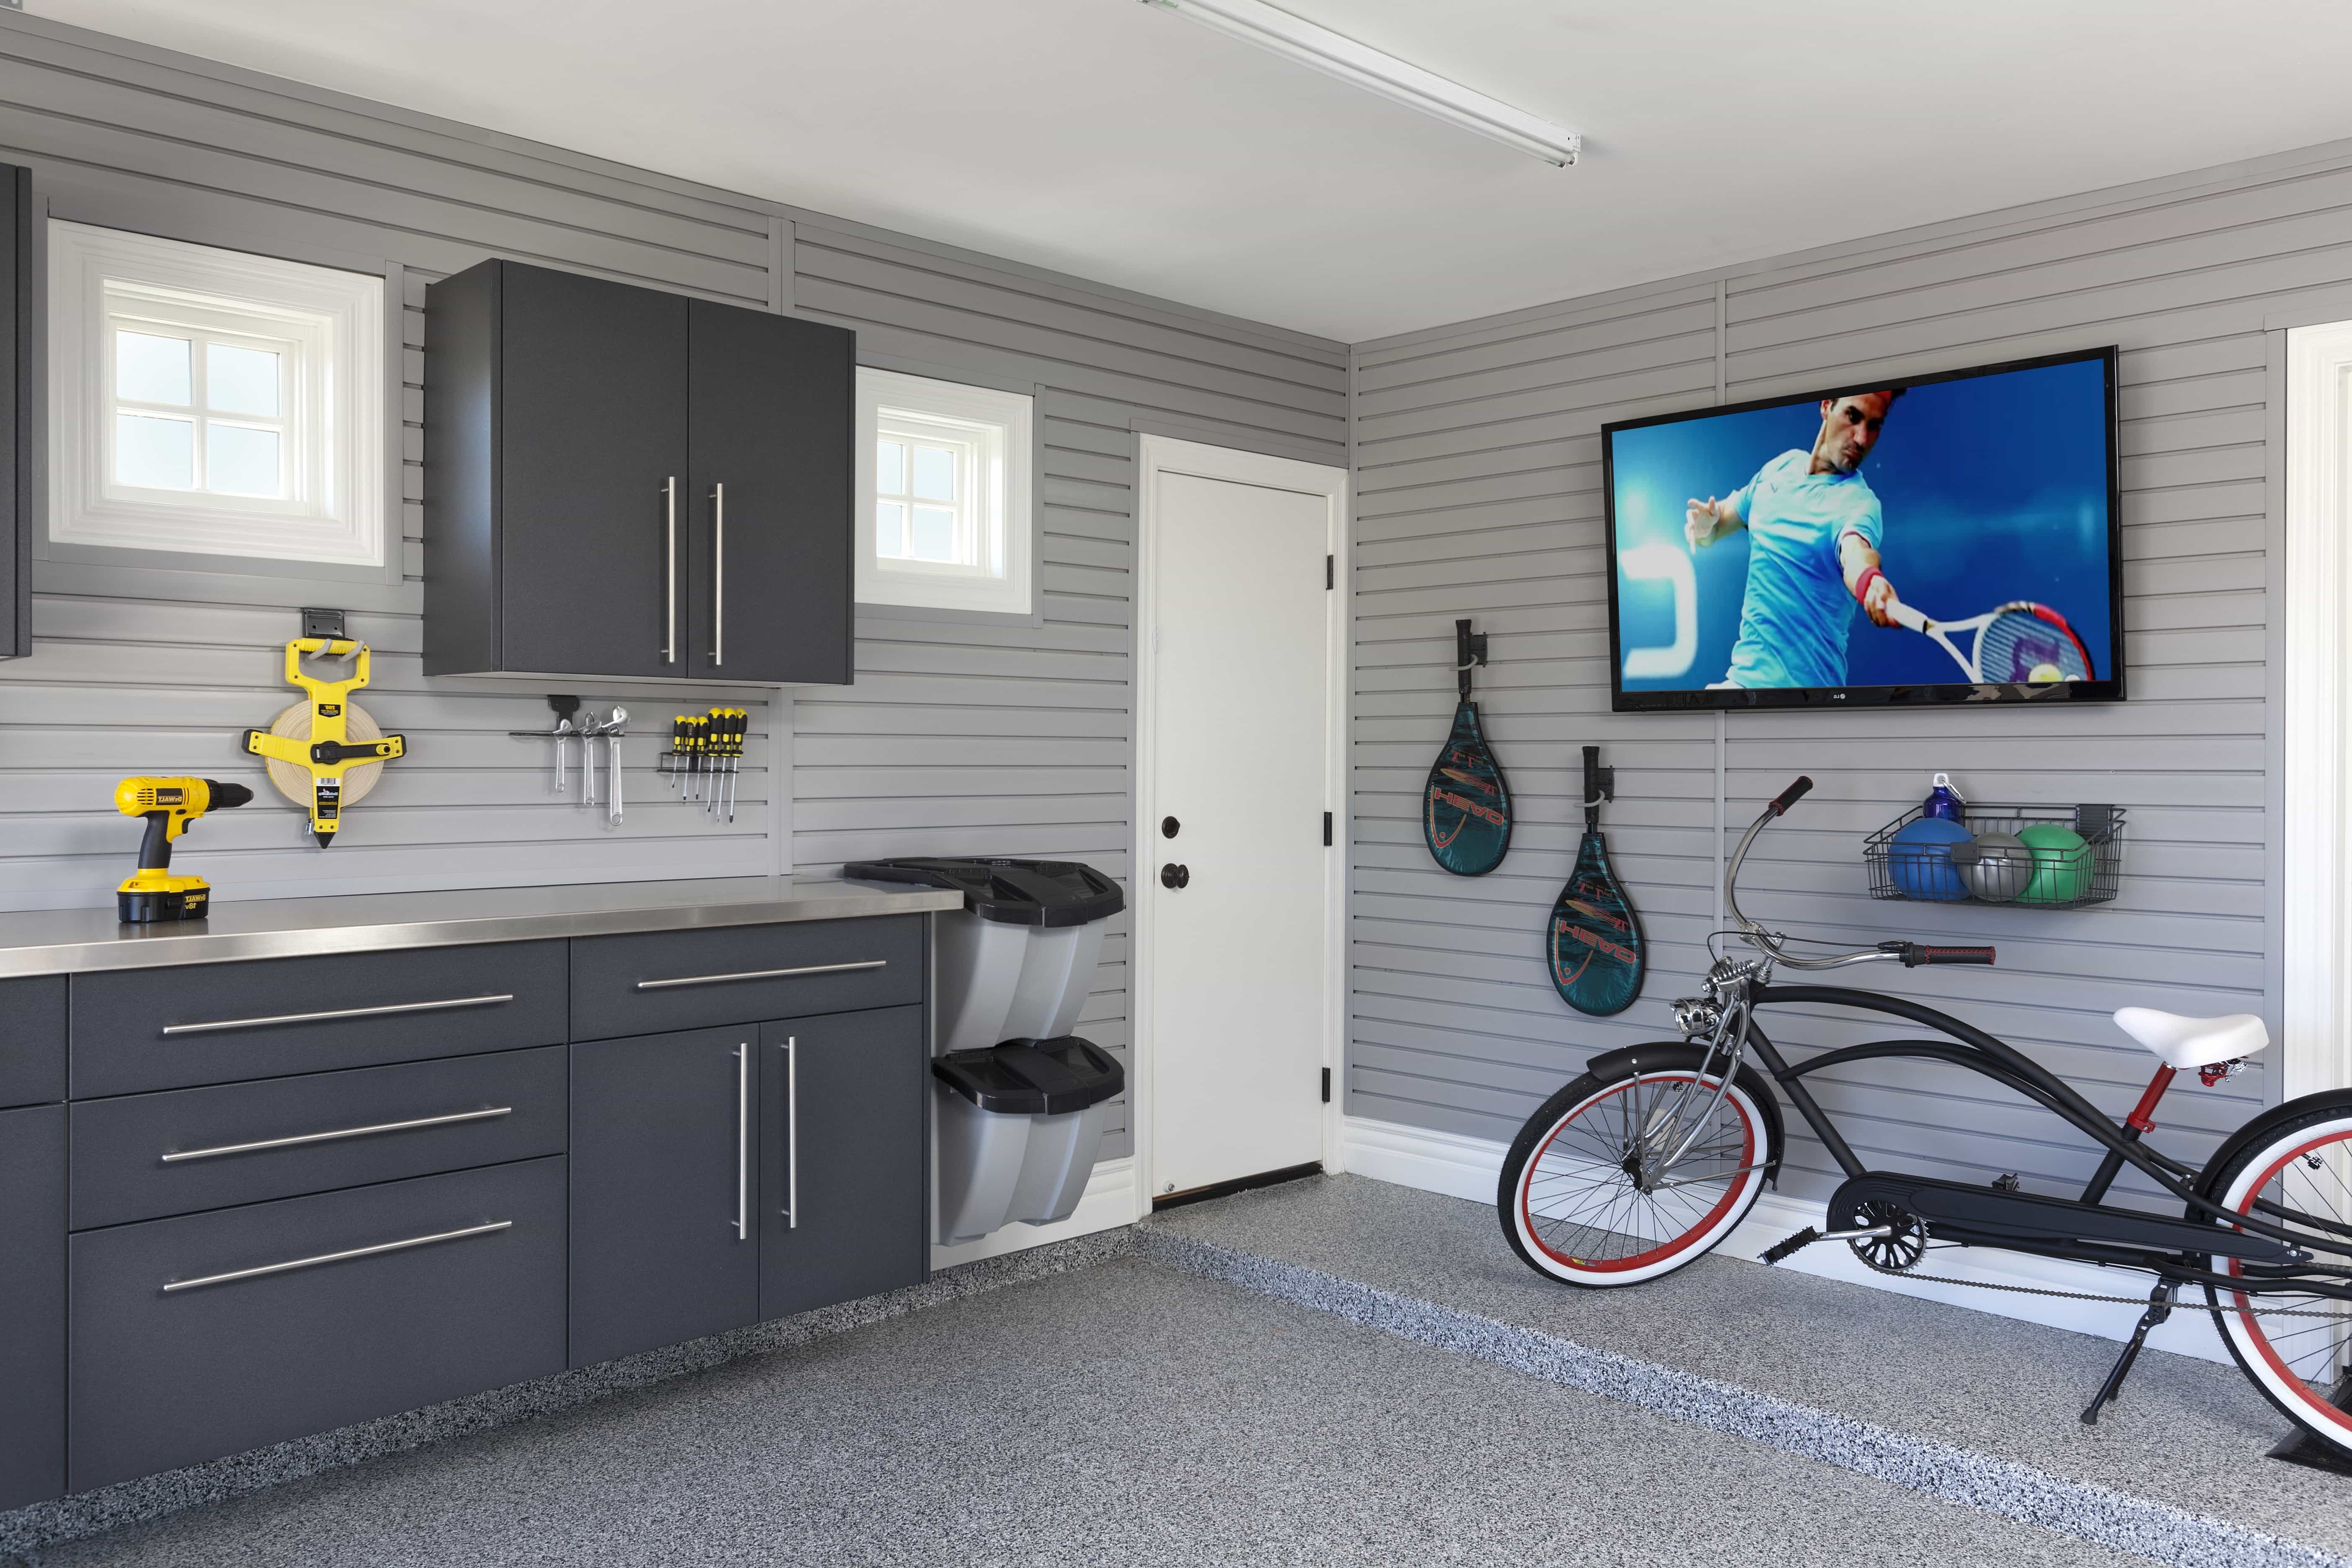 Simple Garage Interior With Flat Cabinets And TV (Image 9 of 10)